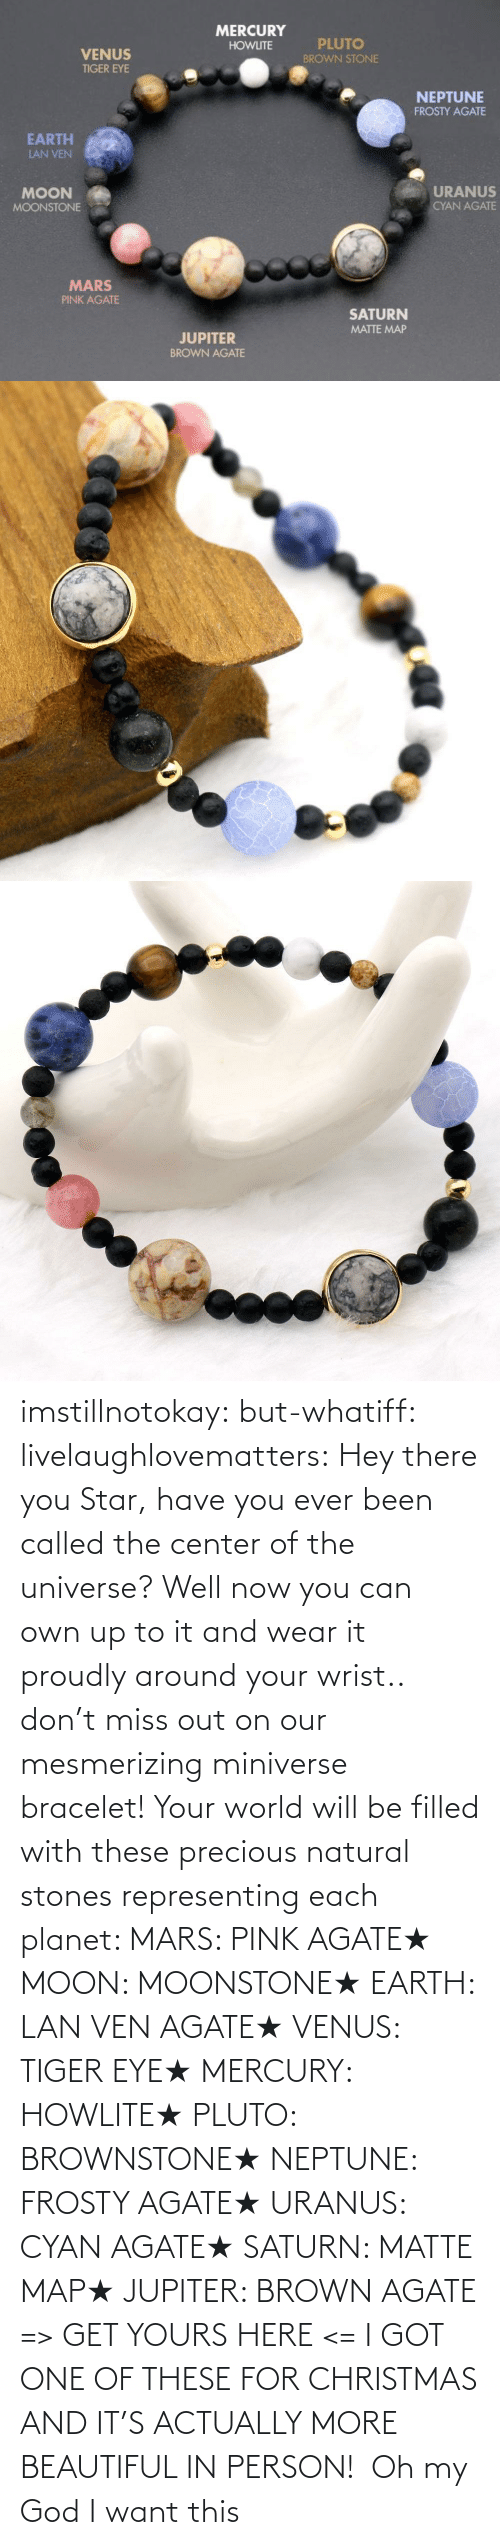 Here: imstillnotokay:  but-whatiff: livelaughlovematters:  Hey there you Star, have you ever been called the center of the universe? Well now you can own up to it and wear it proudly around your wrist.. don't miss out on our mesmerizing miniverse bracelet! Your world will be filled with these precious natural stones representing each planet:  MARS: PINK AGATE★ MOON: MOONSTONE★ EARTH: LAN VEN AGATE★ VENUS: TIGER EYE★ MERCURY: HOWLITE★ PLUTO: BROWNSTONE★ NEPTUNE: FROSTY AGATE★ URANUS: CYAN AGATE★ SATURN: MATTE MAP★ JUPITER: BROWN AGATE => GET YOURS HERE <=  I GOT ONE OF THESE FOR CHRISTMAS AND IT'S ACTUALLY MORE BEAUTIFUL IN PERSON!     Oh my God I want this